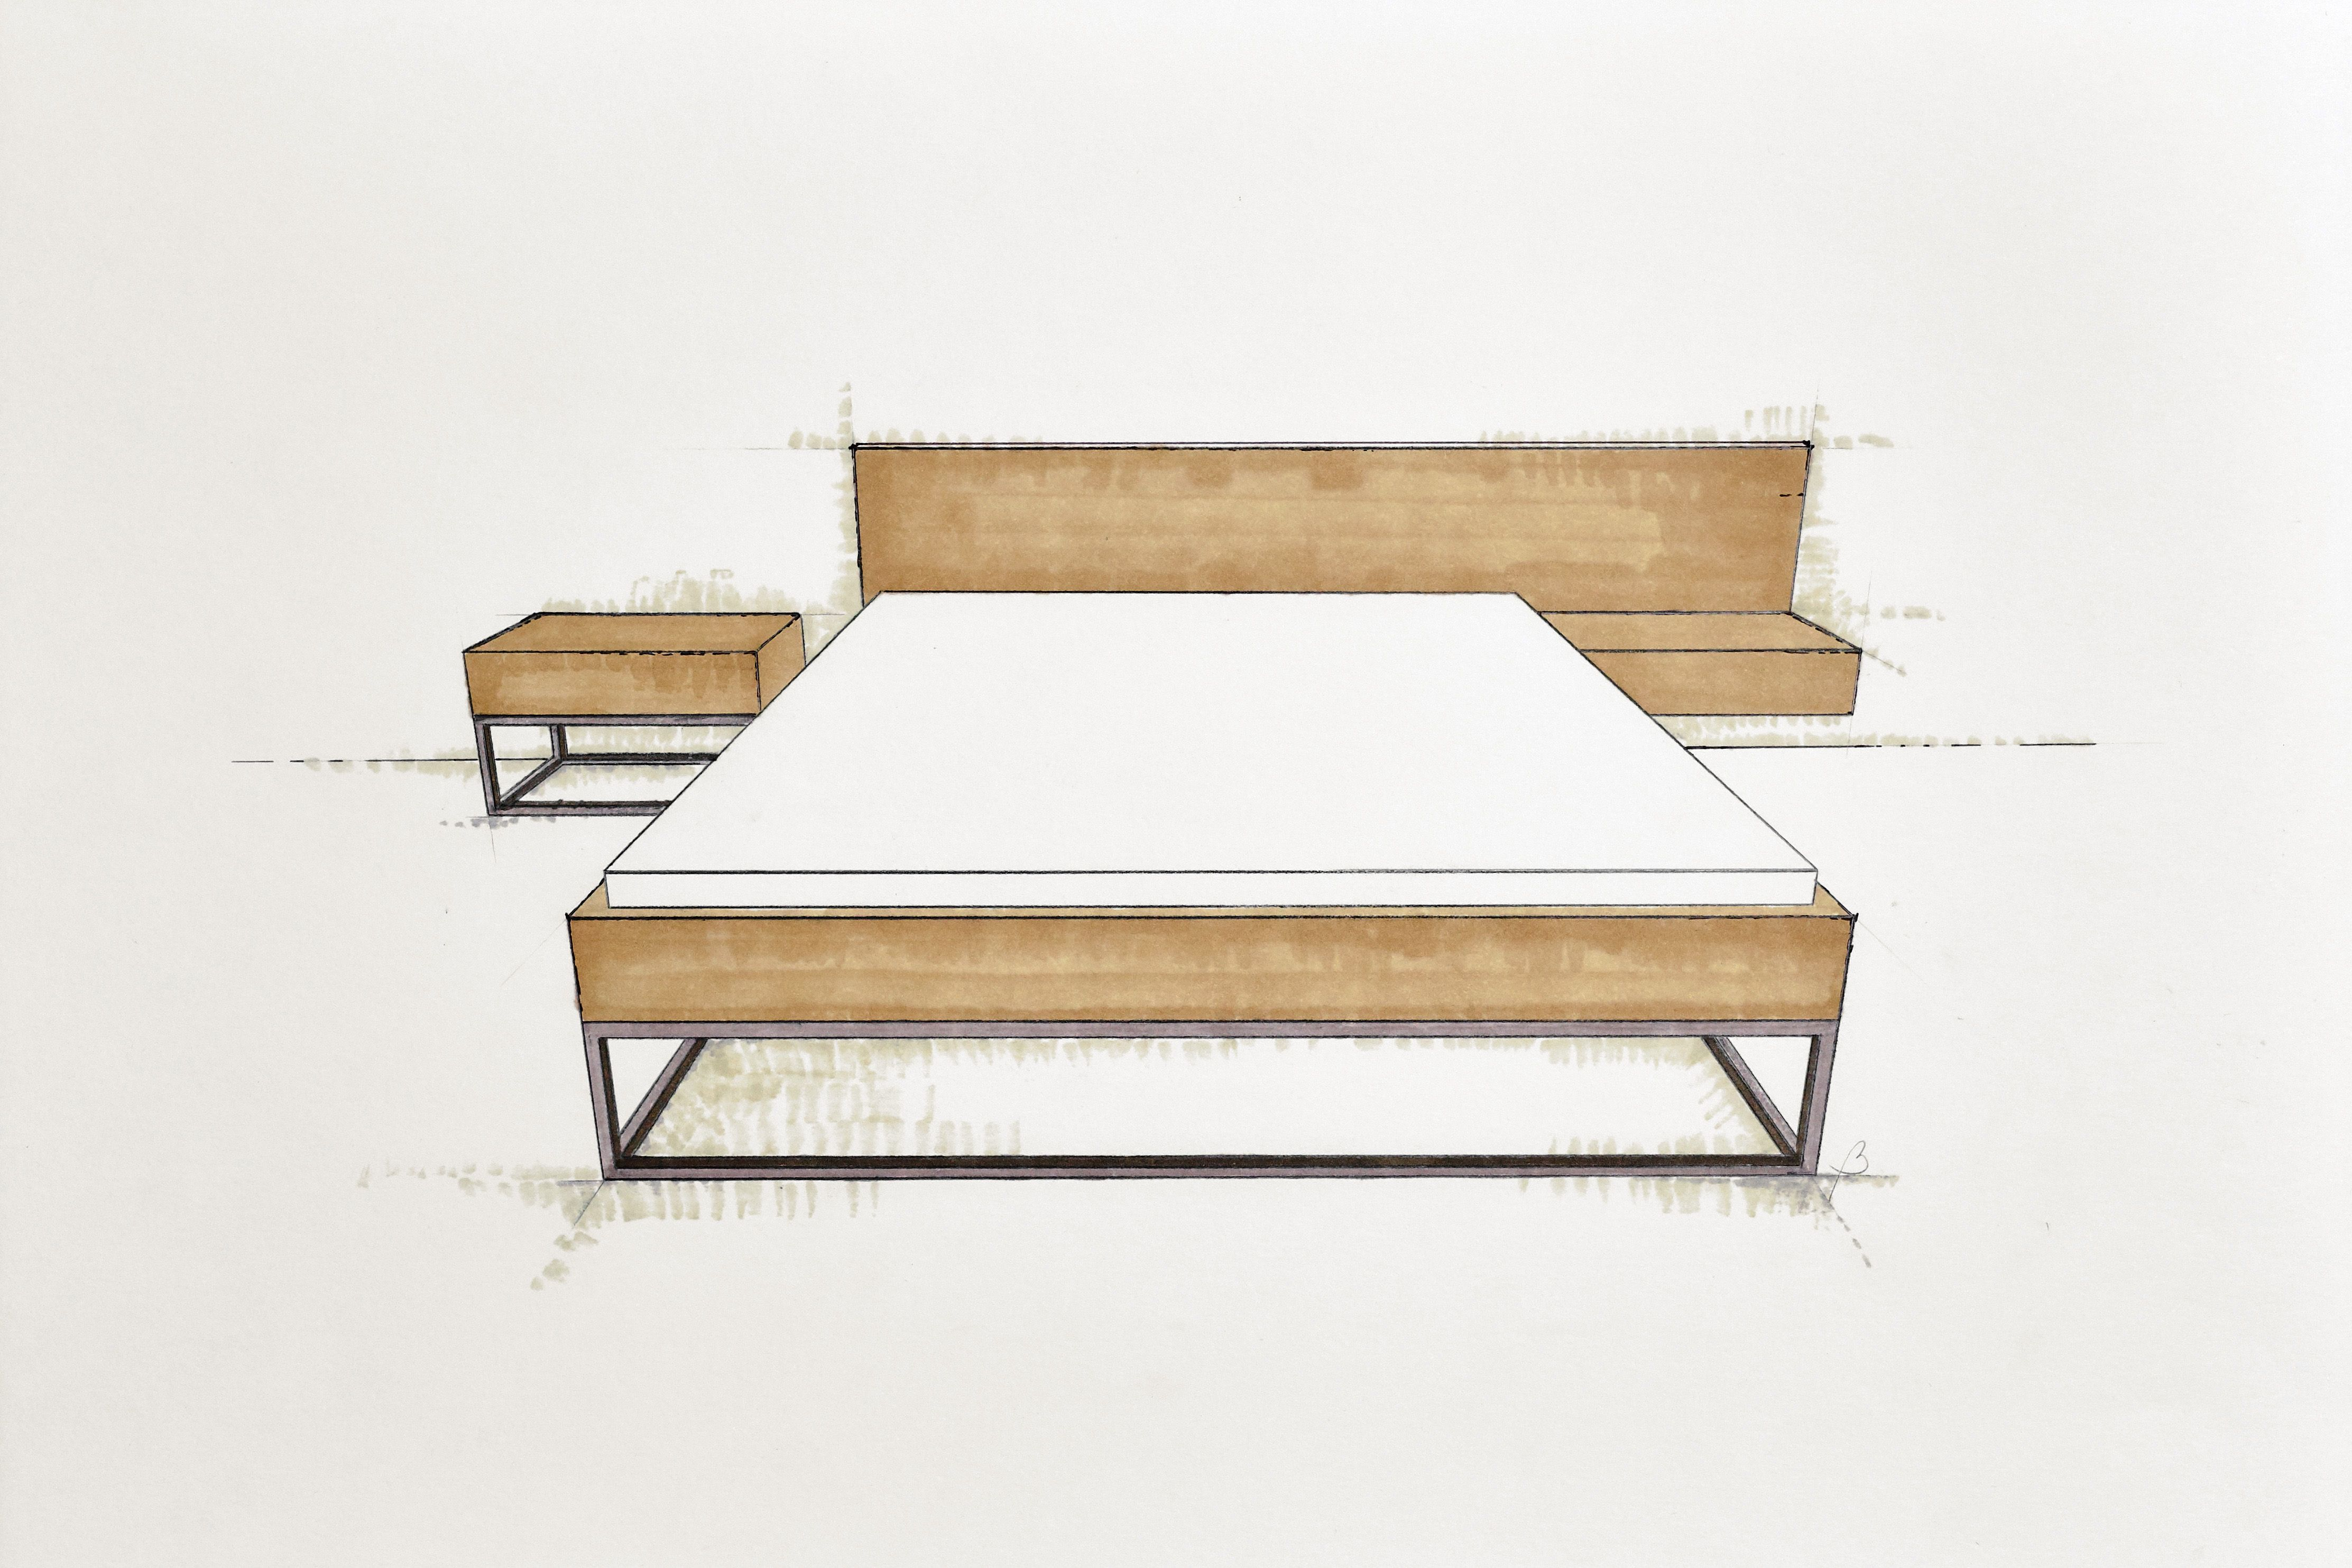 Handcrafted bespoke wooden bed. Modern, simple furniture ...